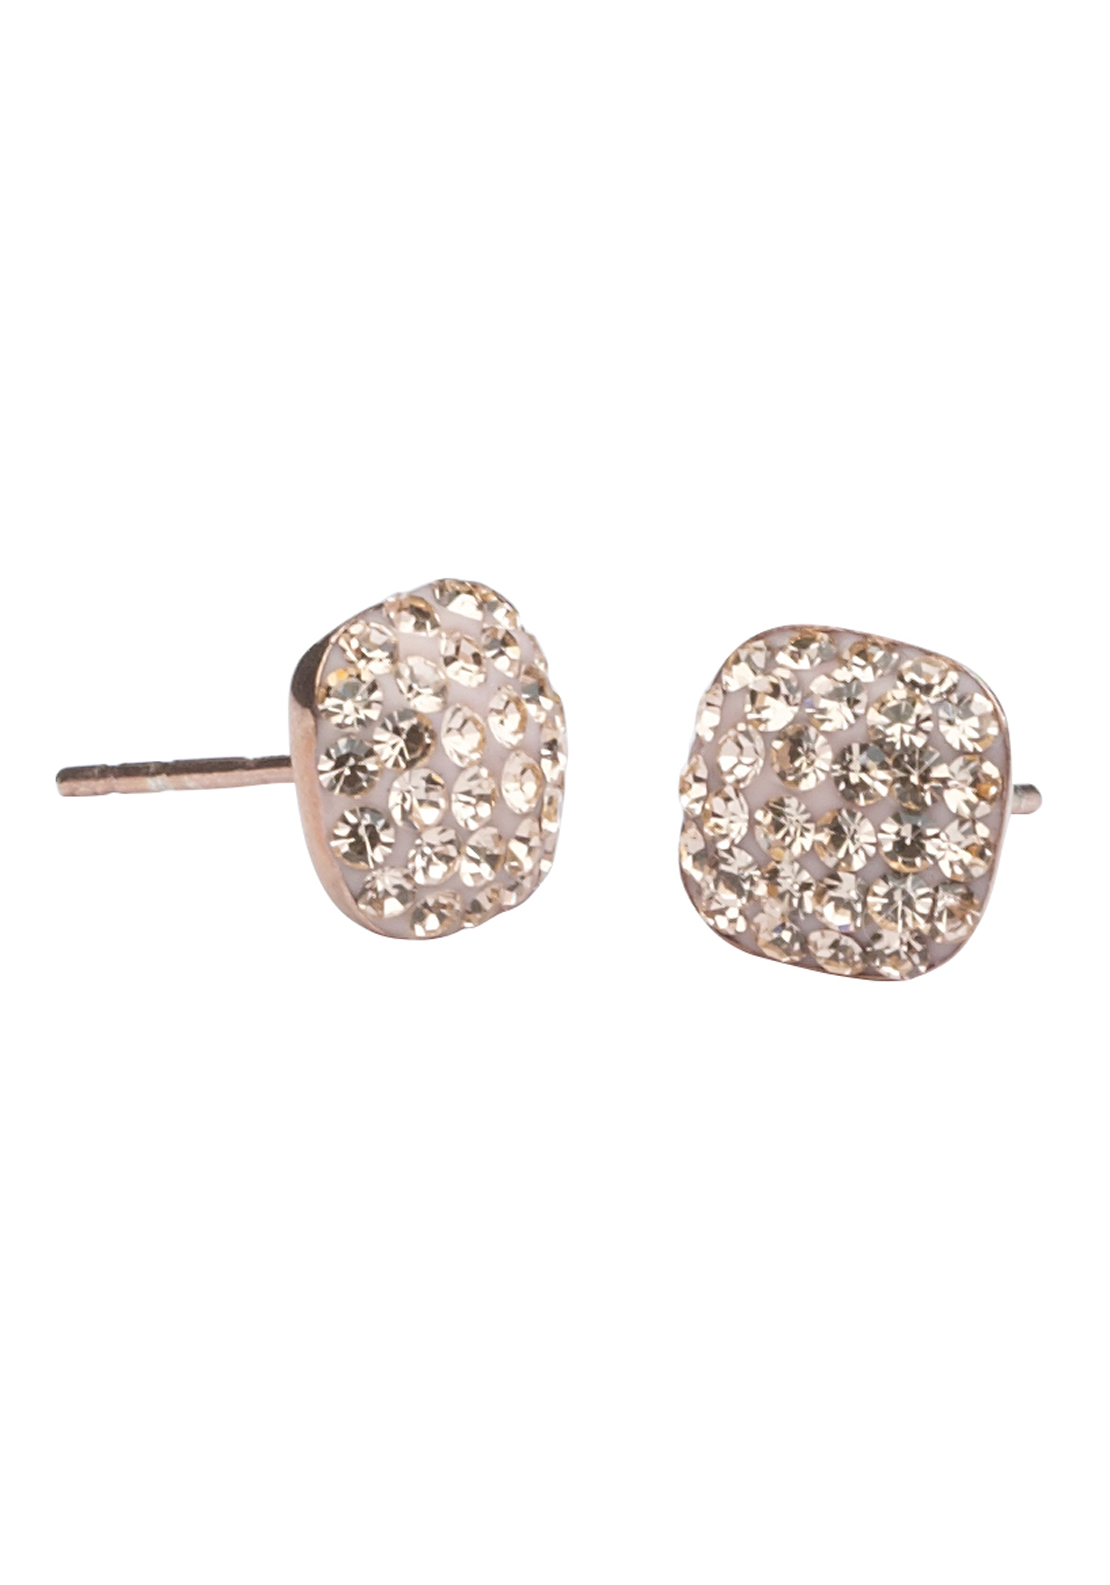 Killarney Crystal Venus Rose Gold Plated Square Earrings